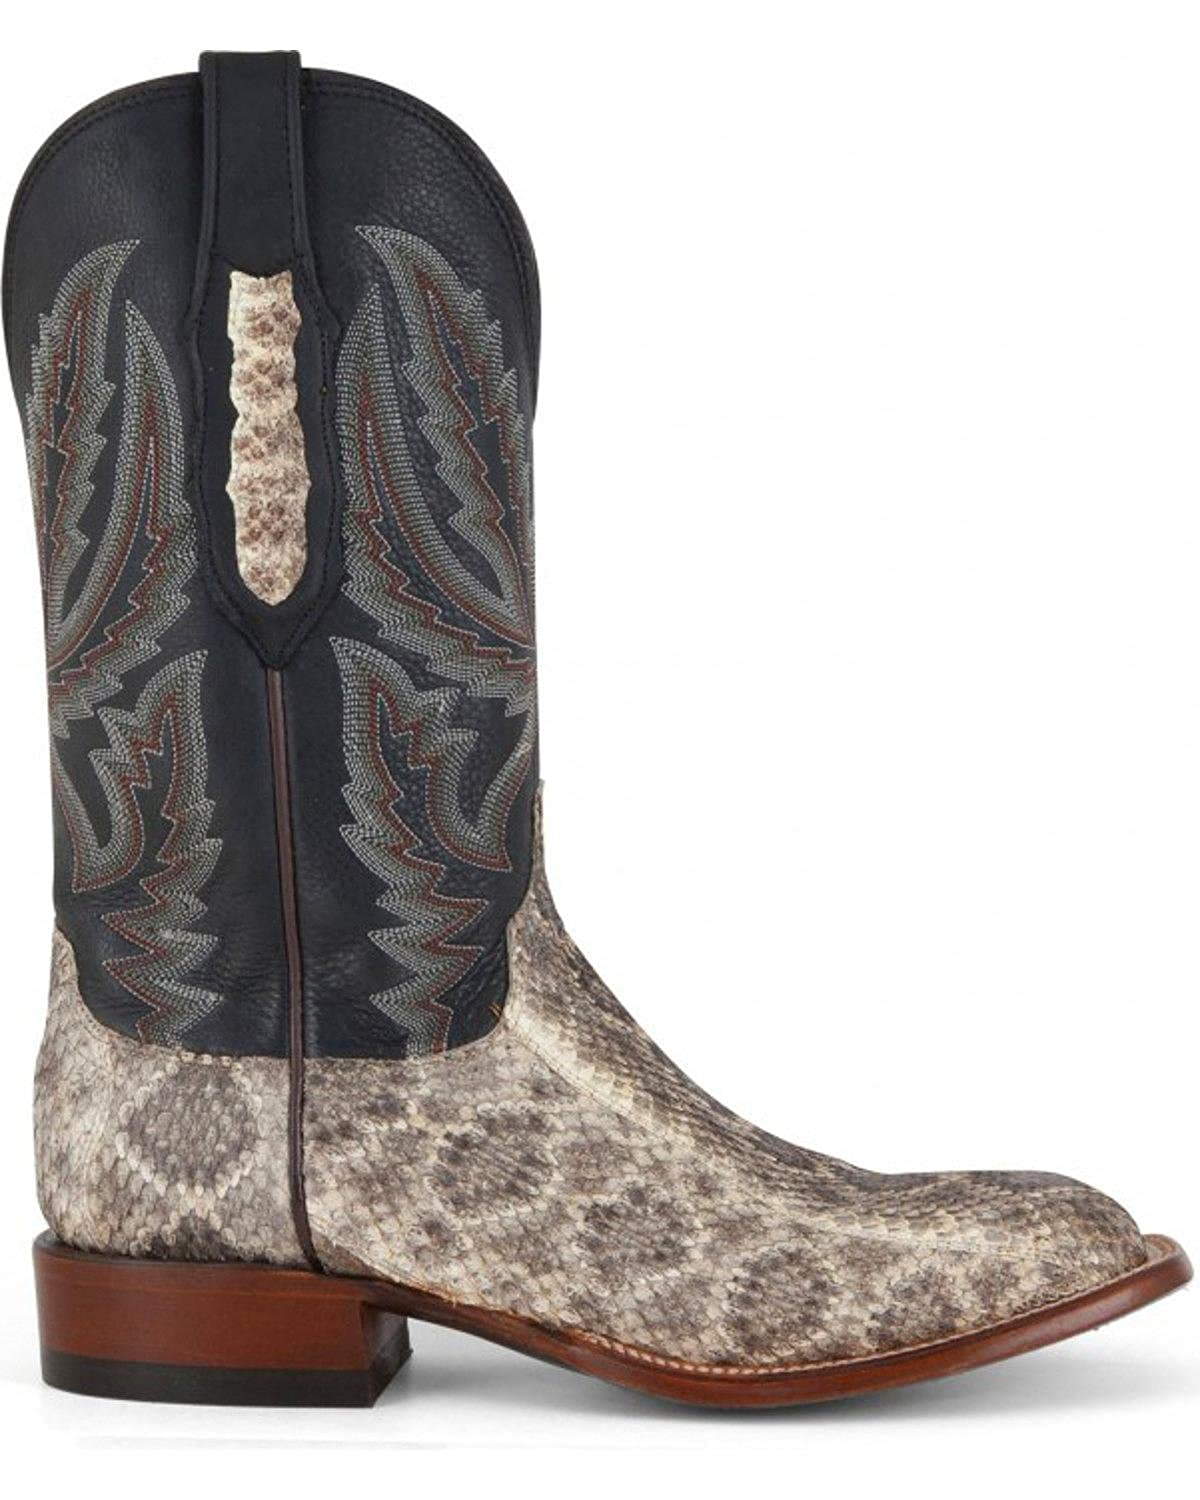 Cheap Price From China Sale In China Lucchese Bootmaker Rex 7 Toe Cowboy Boot(Men's) -Brandy Alligator Cheap New 100% Guaranteed Buy Online With Paypal LReSYJqixc